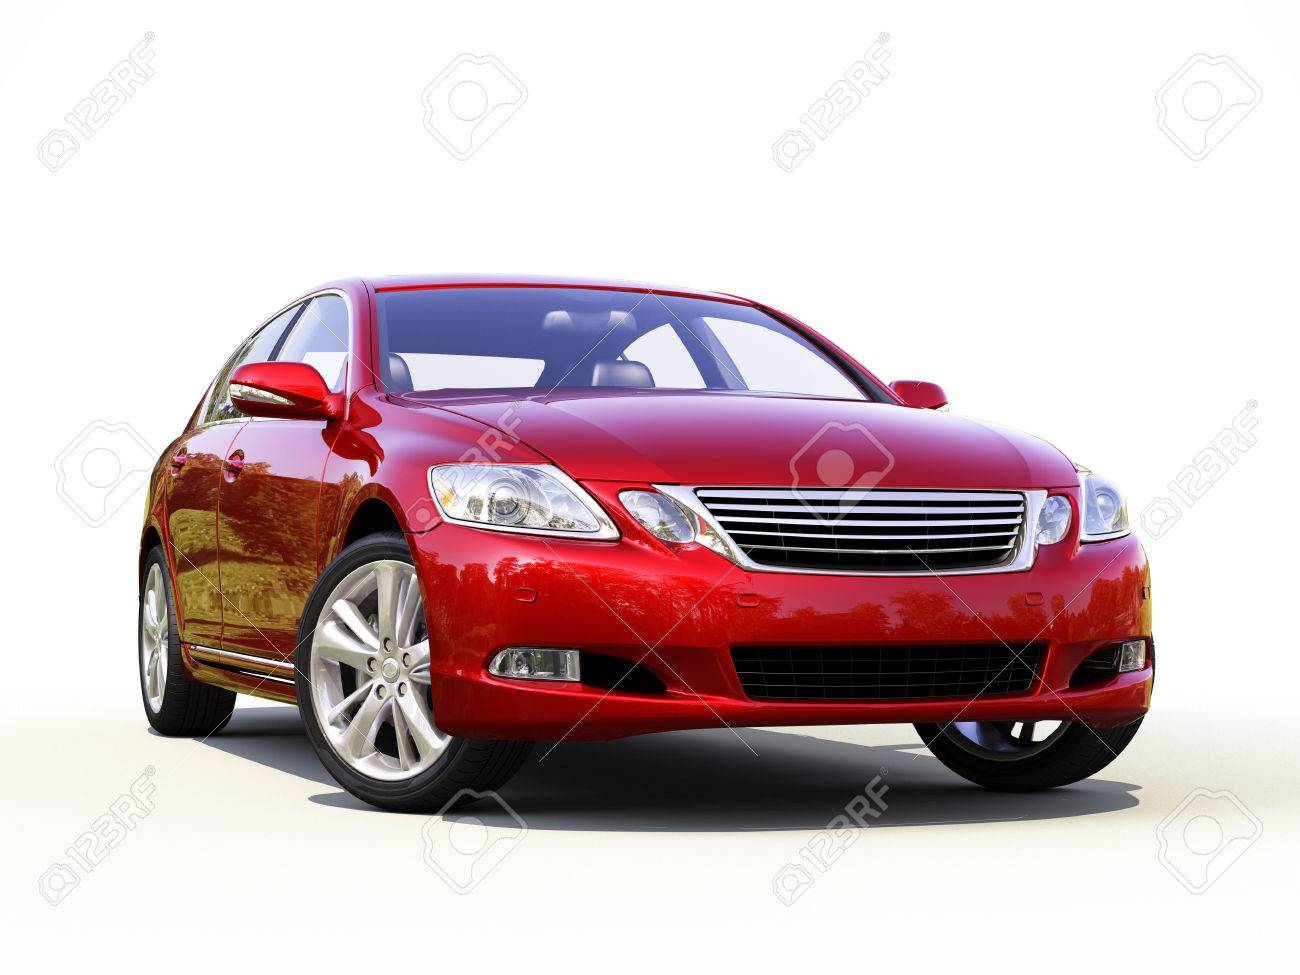 Modern car on a light background with a shadow - 22488409